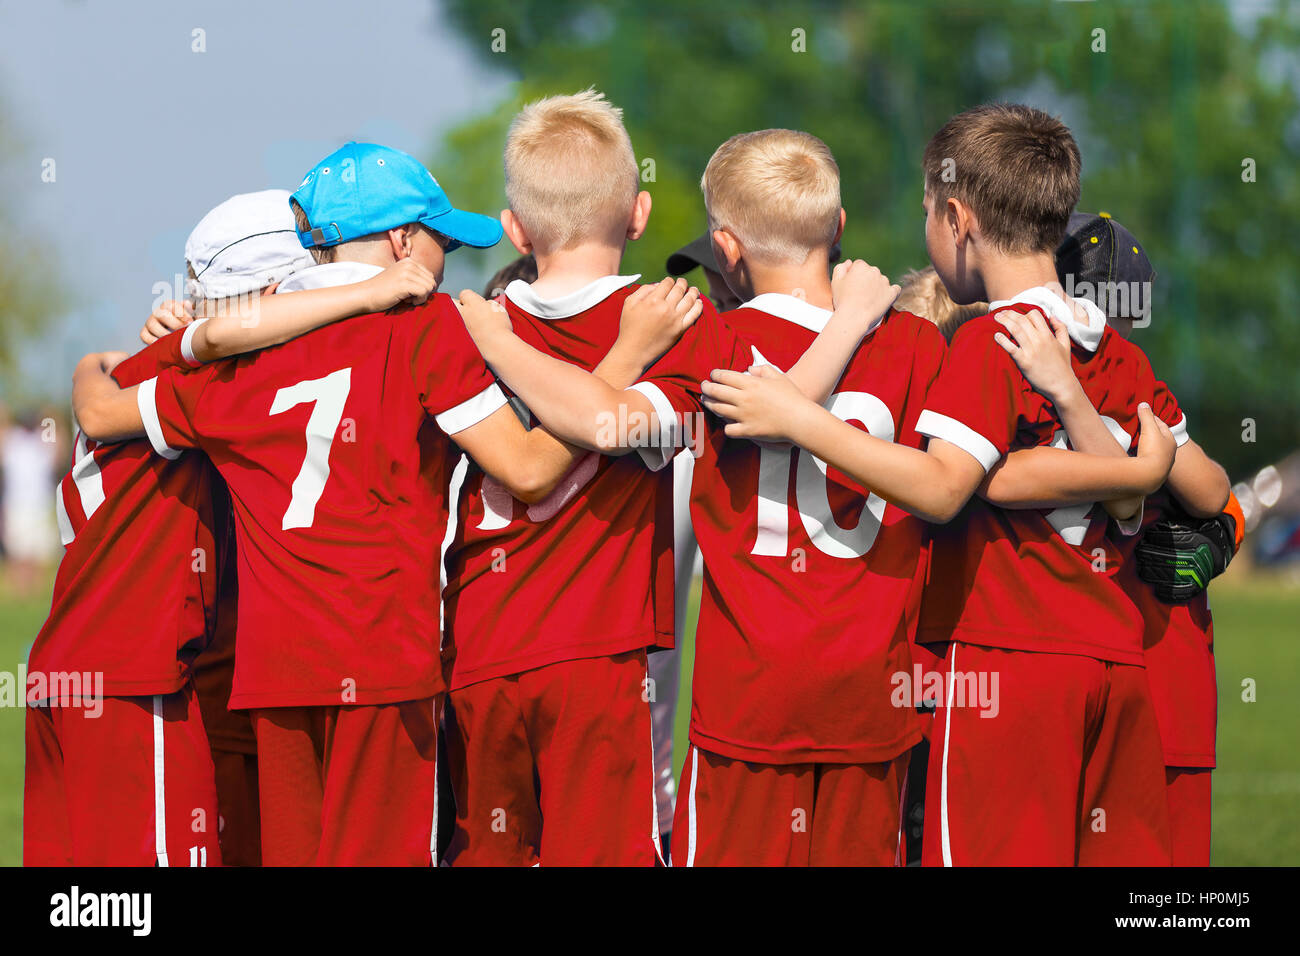 Soccer team huddle kids